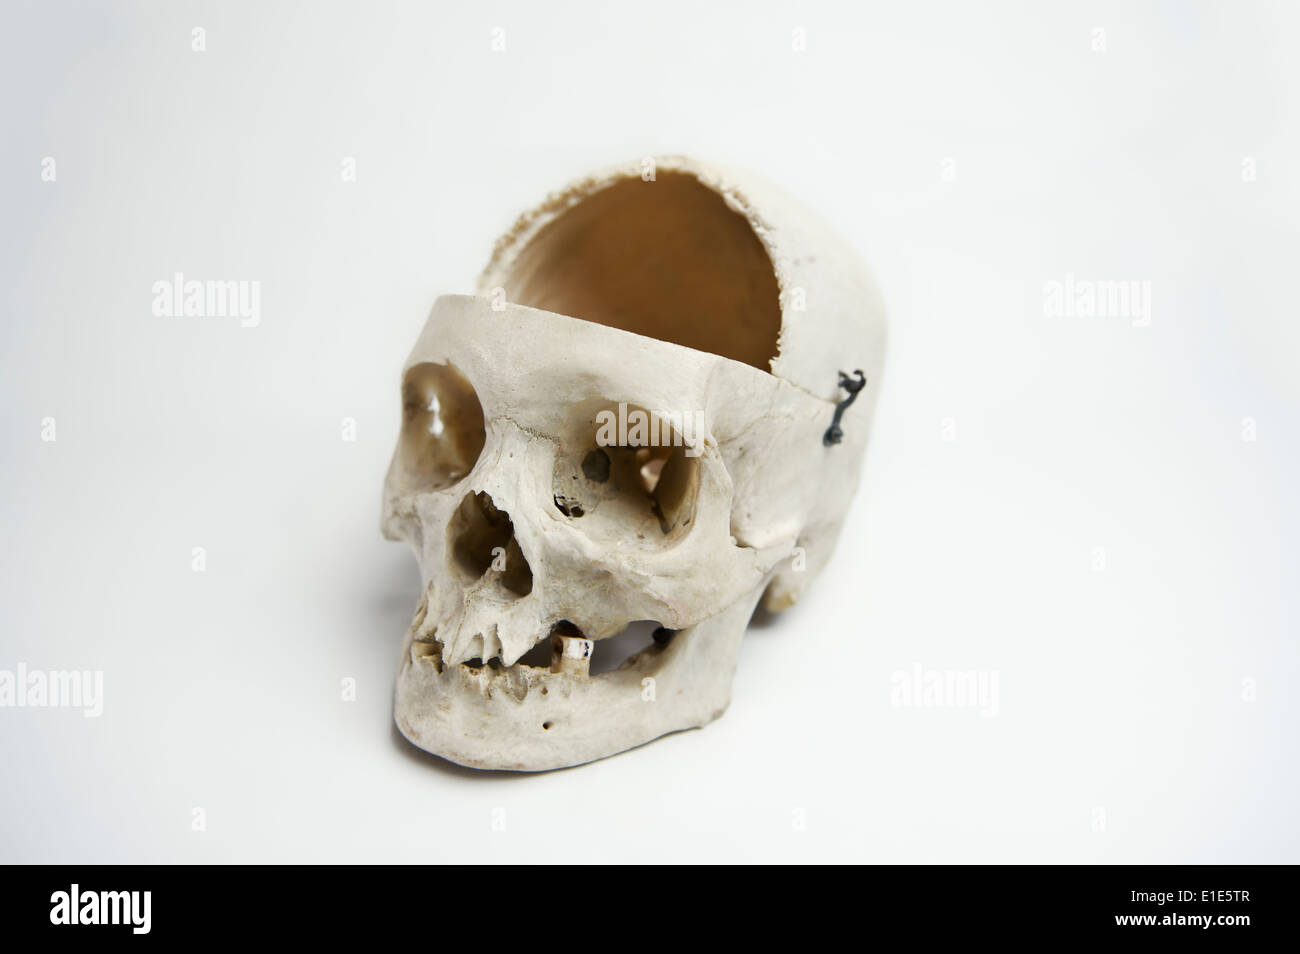 Genuine Human Skull with the front quarter removed used for Medical Studies - Stock Image